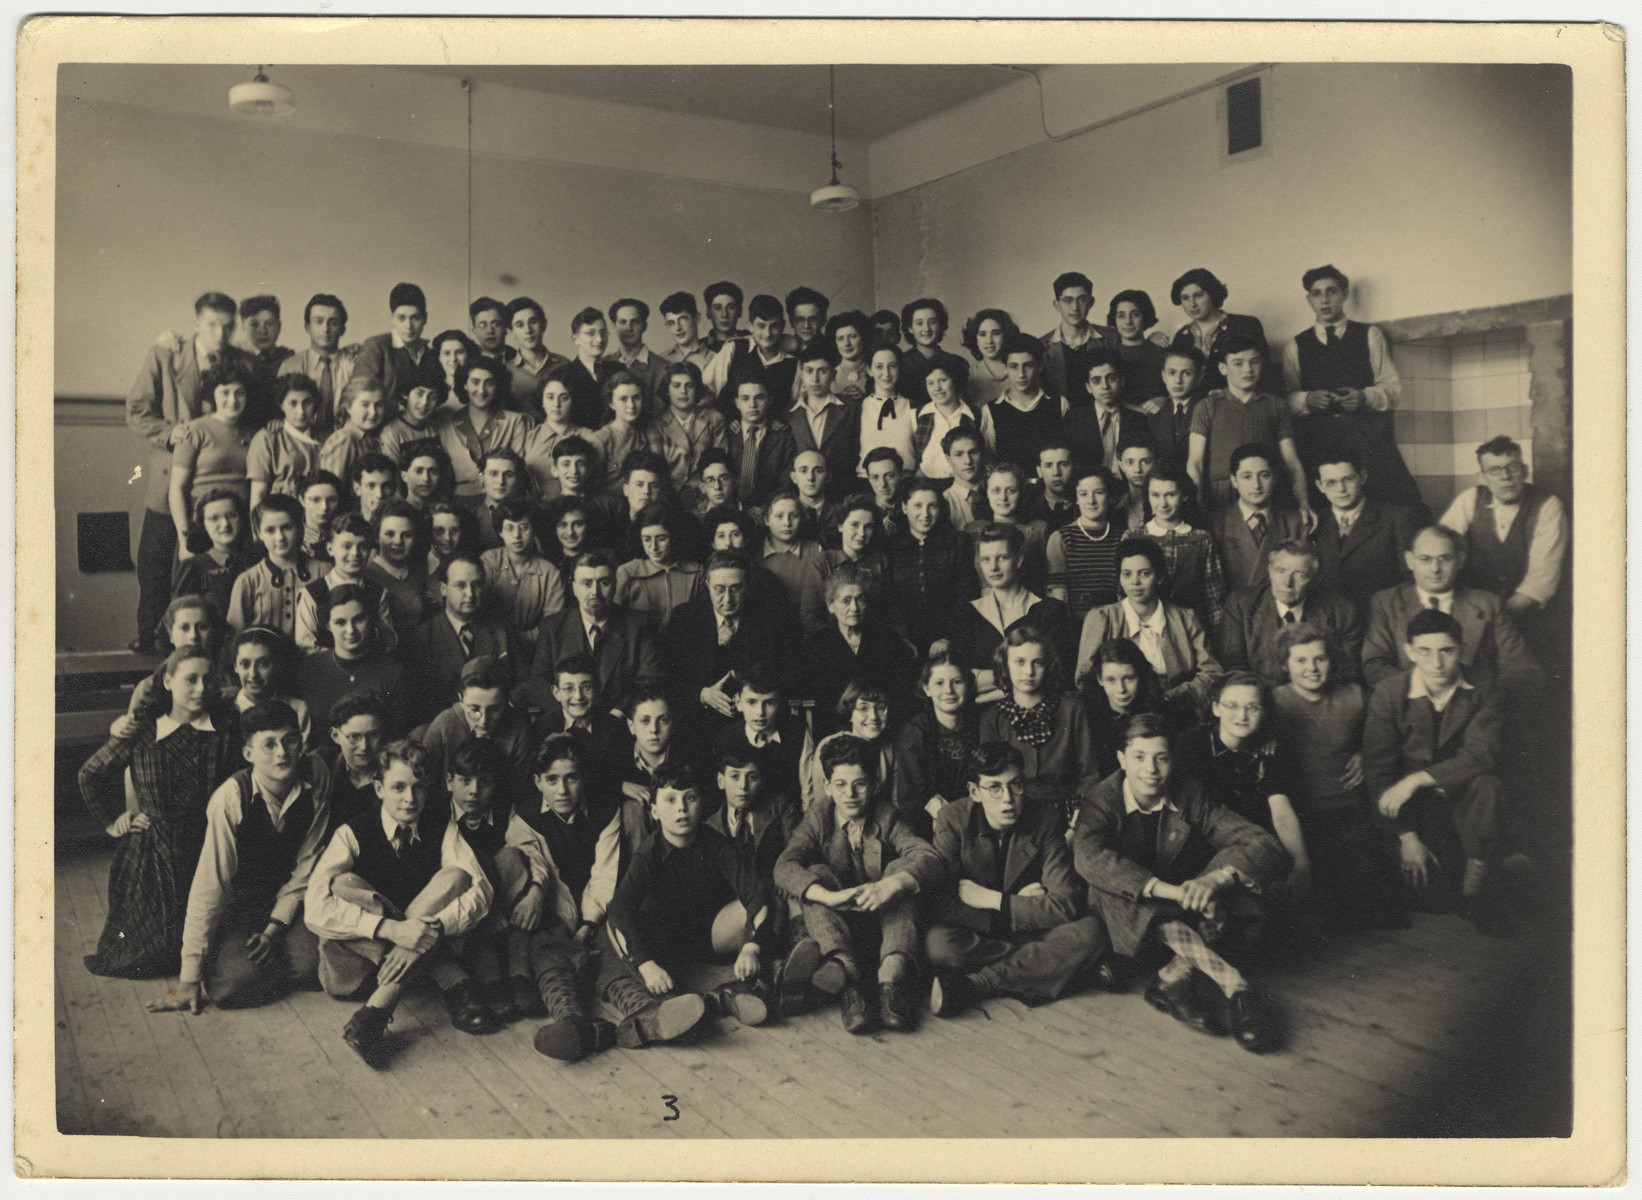 Postwar group portrait of students in the Jewish school in Amsterdam.  Among those pictured is Clary Vromen.